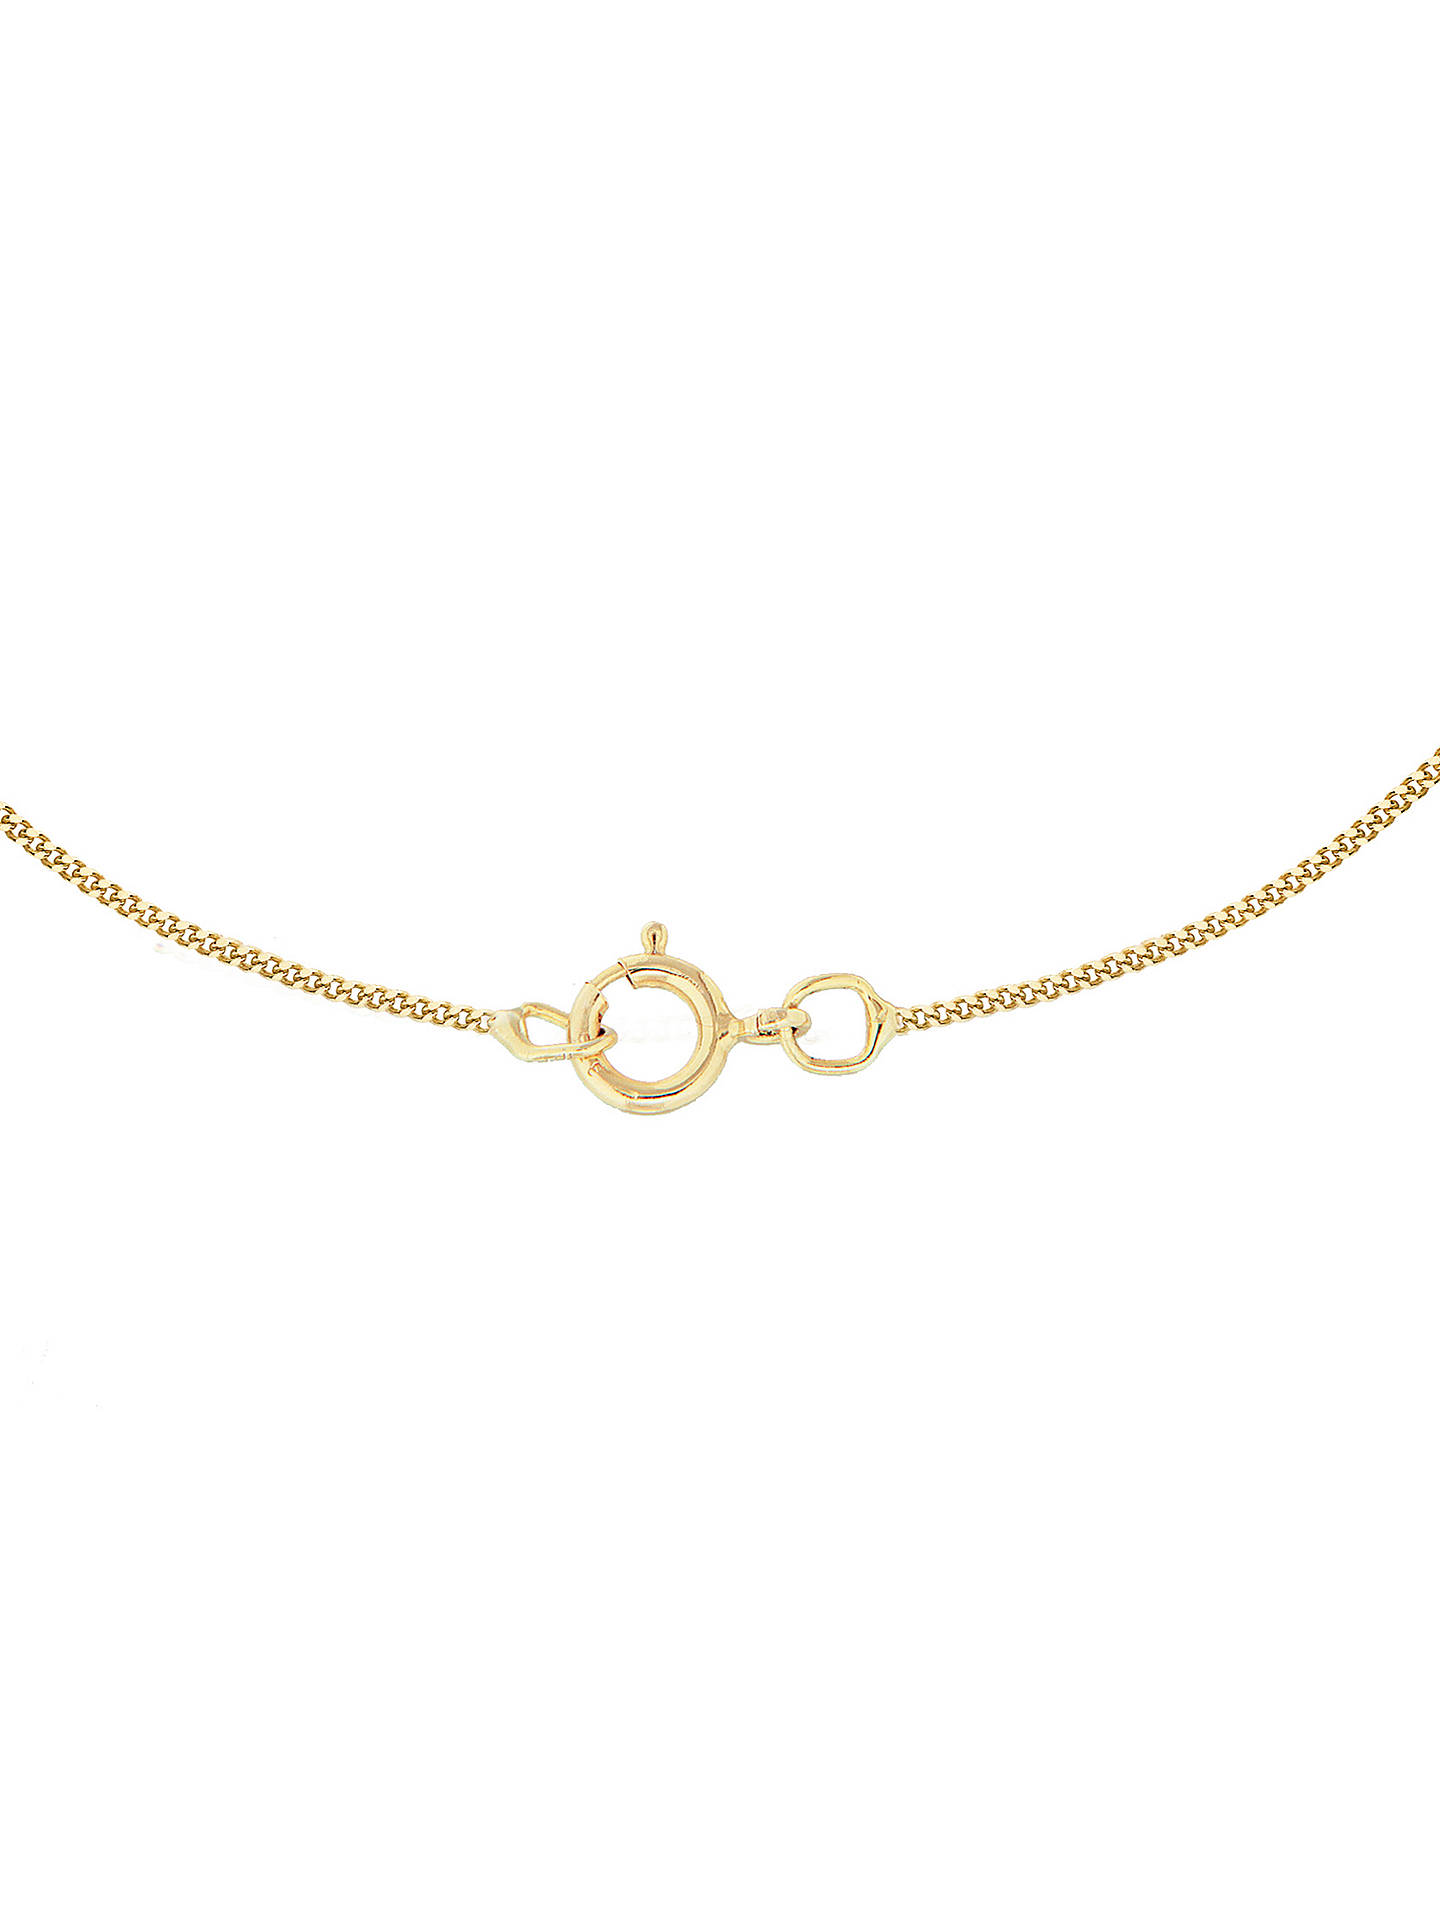 BuyIBB 9ct Gold Cubic Zirconia Initial Pendant Necklace, B Online at johnlewis.com